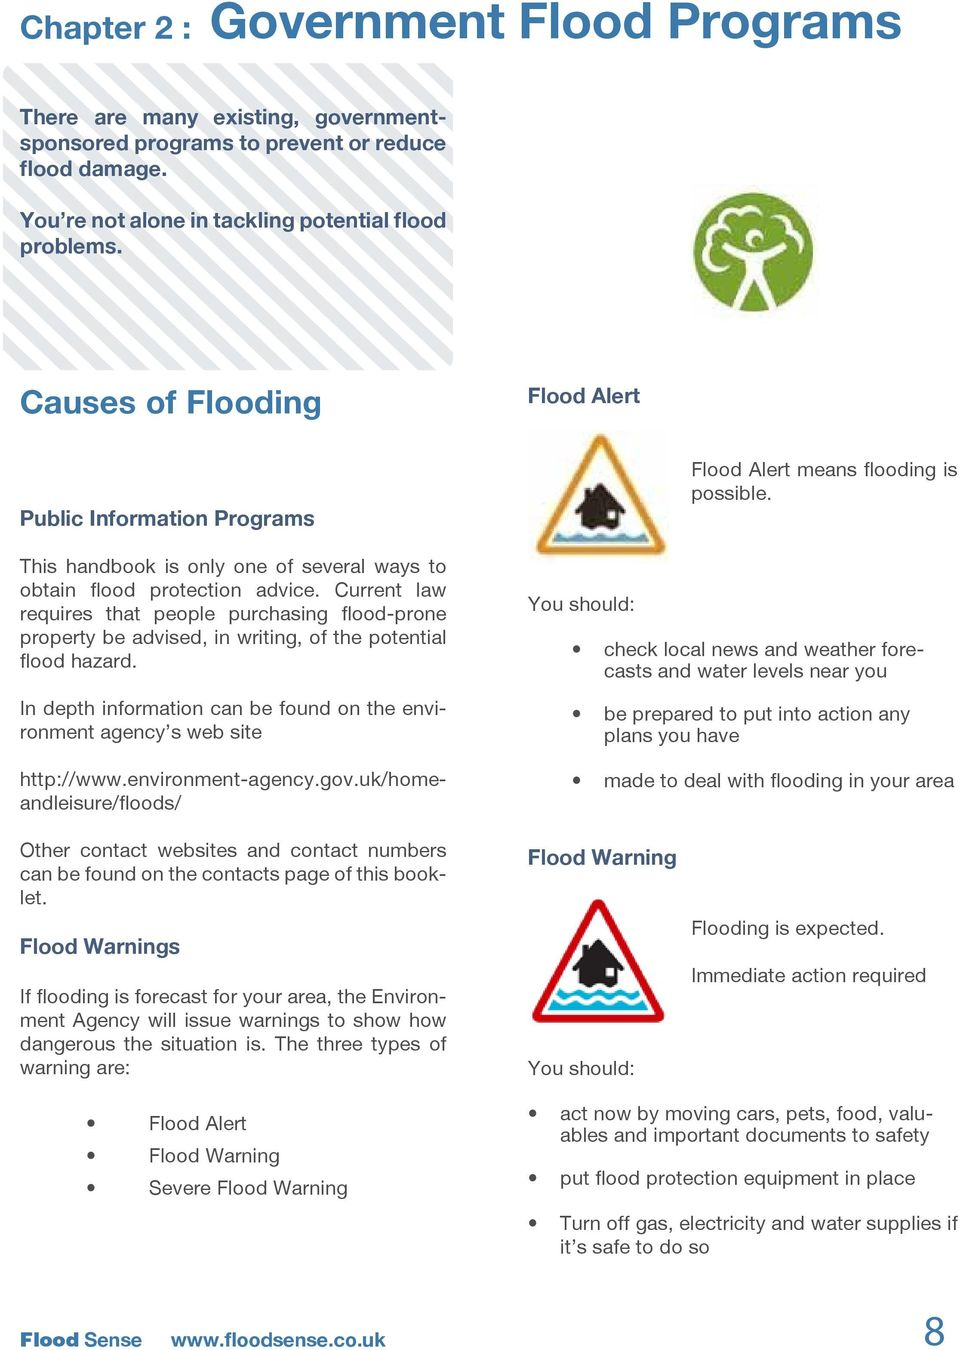 Current law requires that people purchasing flood-prone property be advised, in writing, of the potential flood hazard.